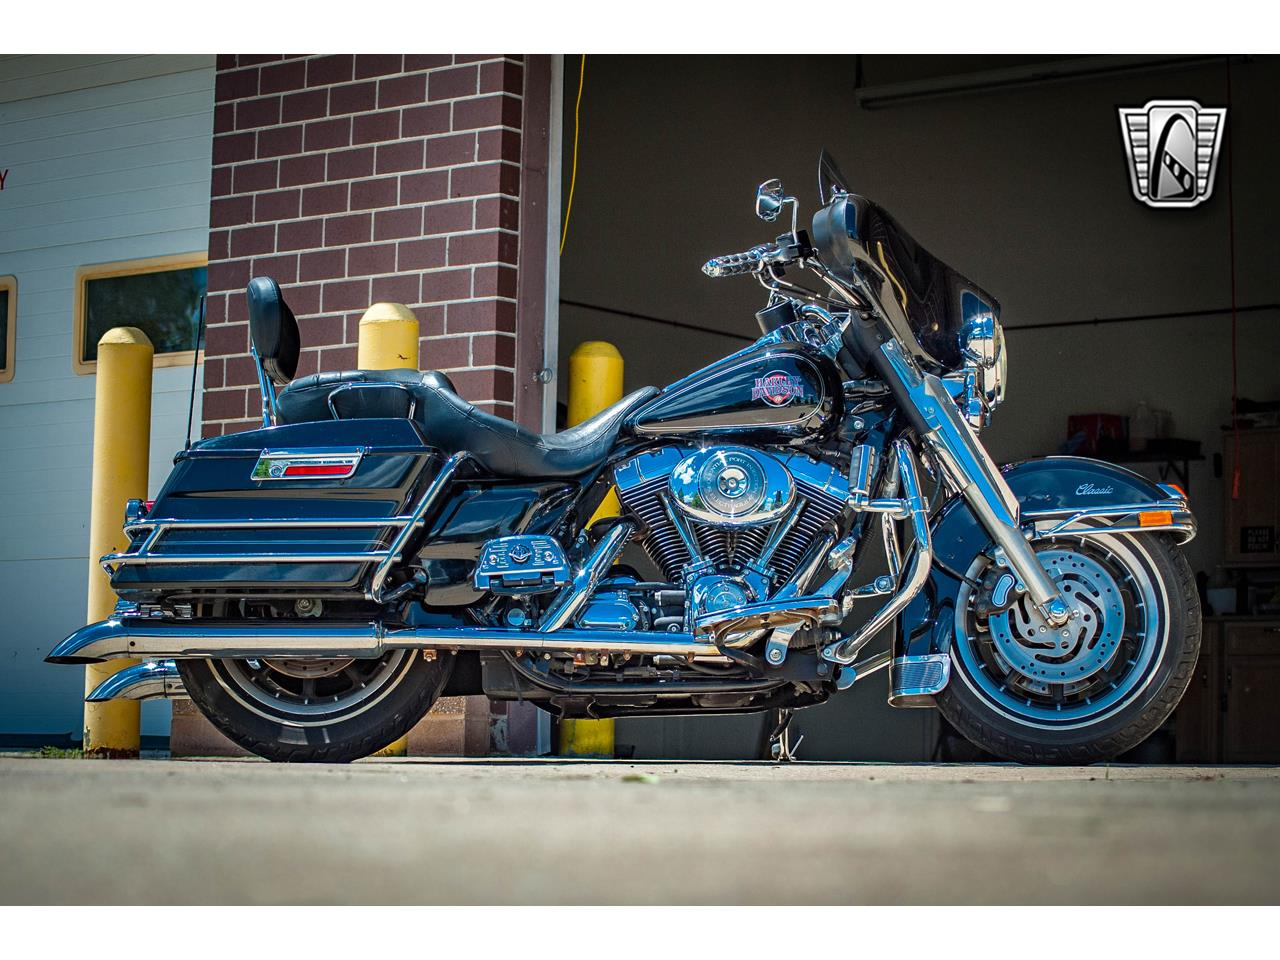 2004 Harley-Davidson Motorcycle for sale in O'Fallon, IL – photo 52